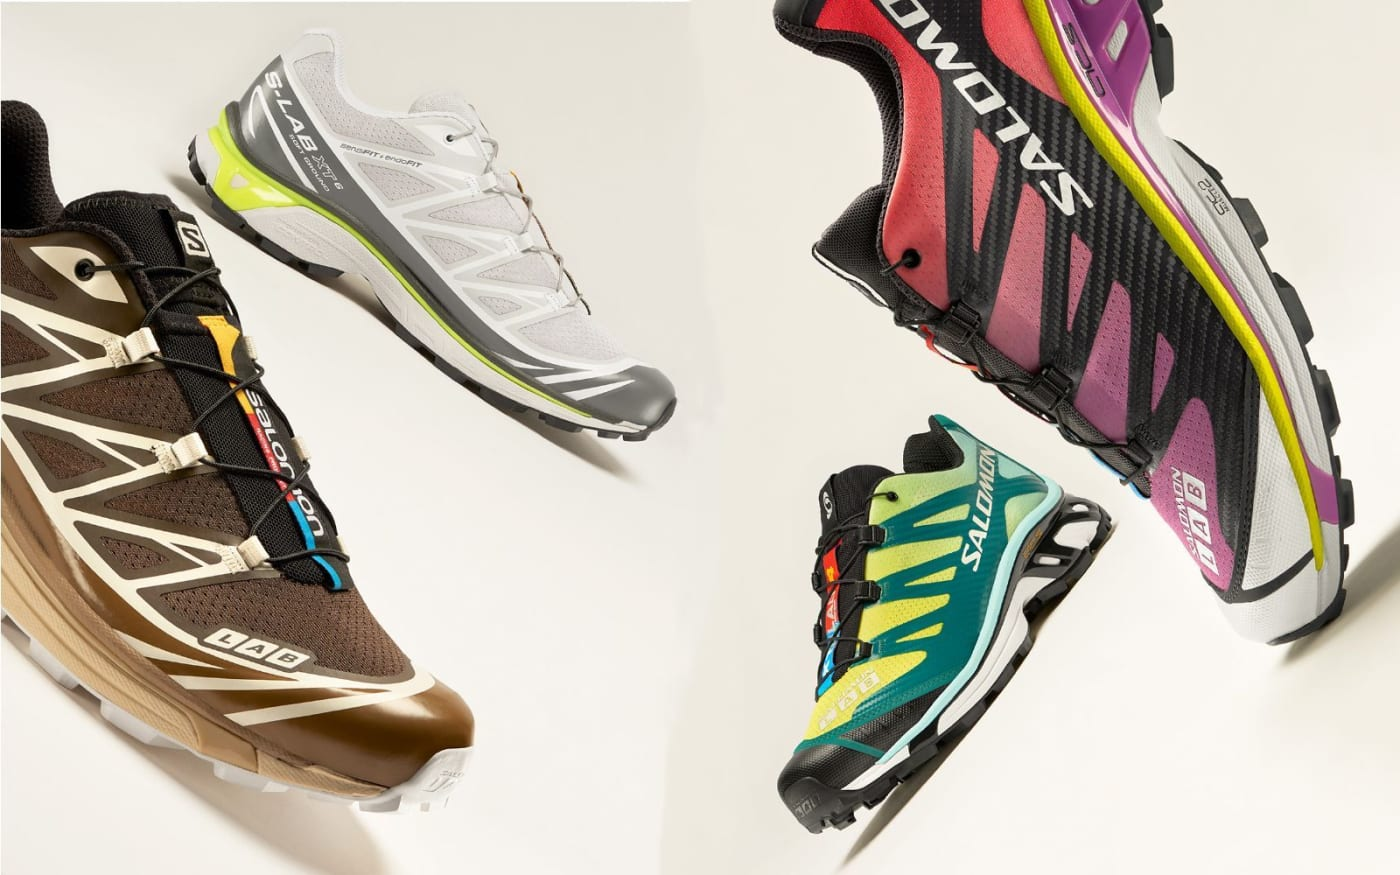 salomon ss21 collection 1 feature